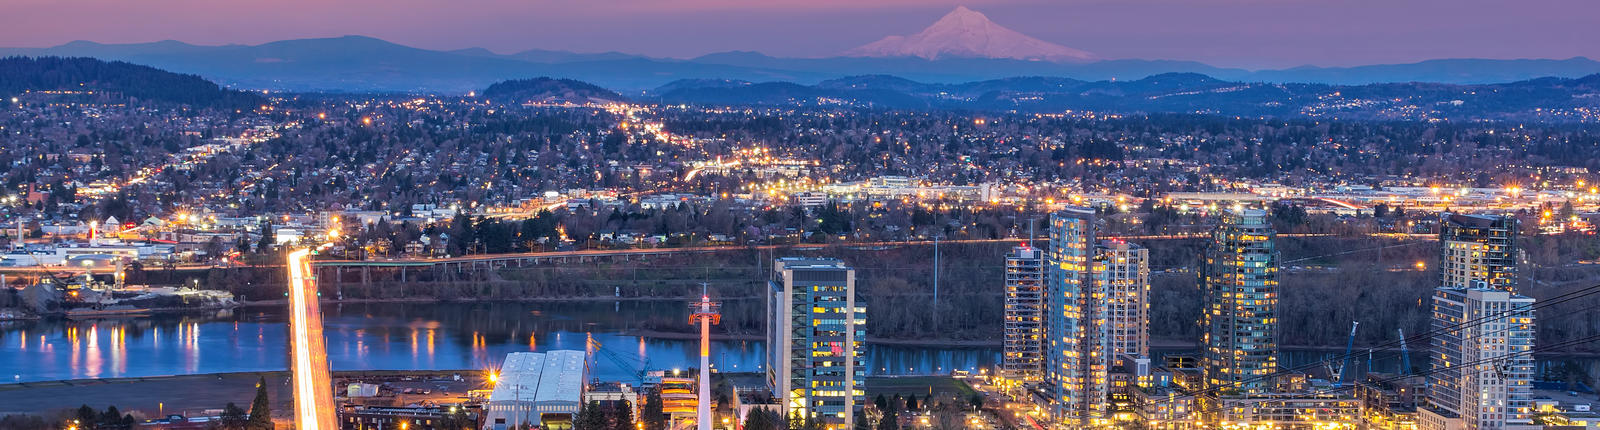 2020 State of the Economy report - Portland, OR